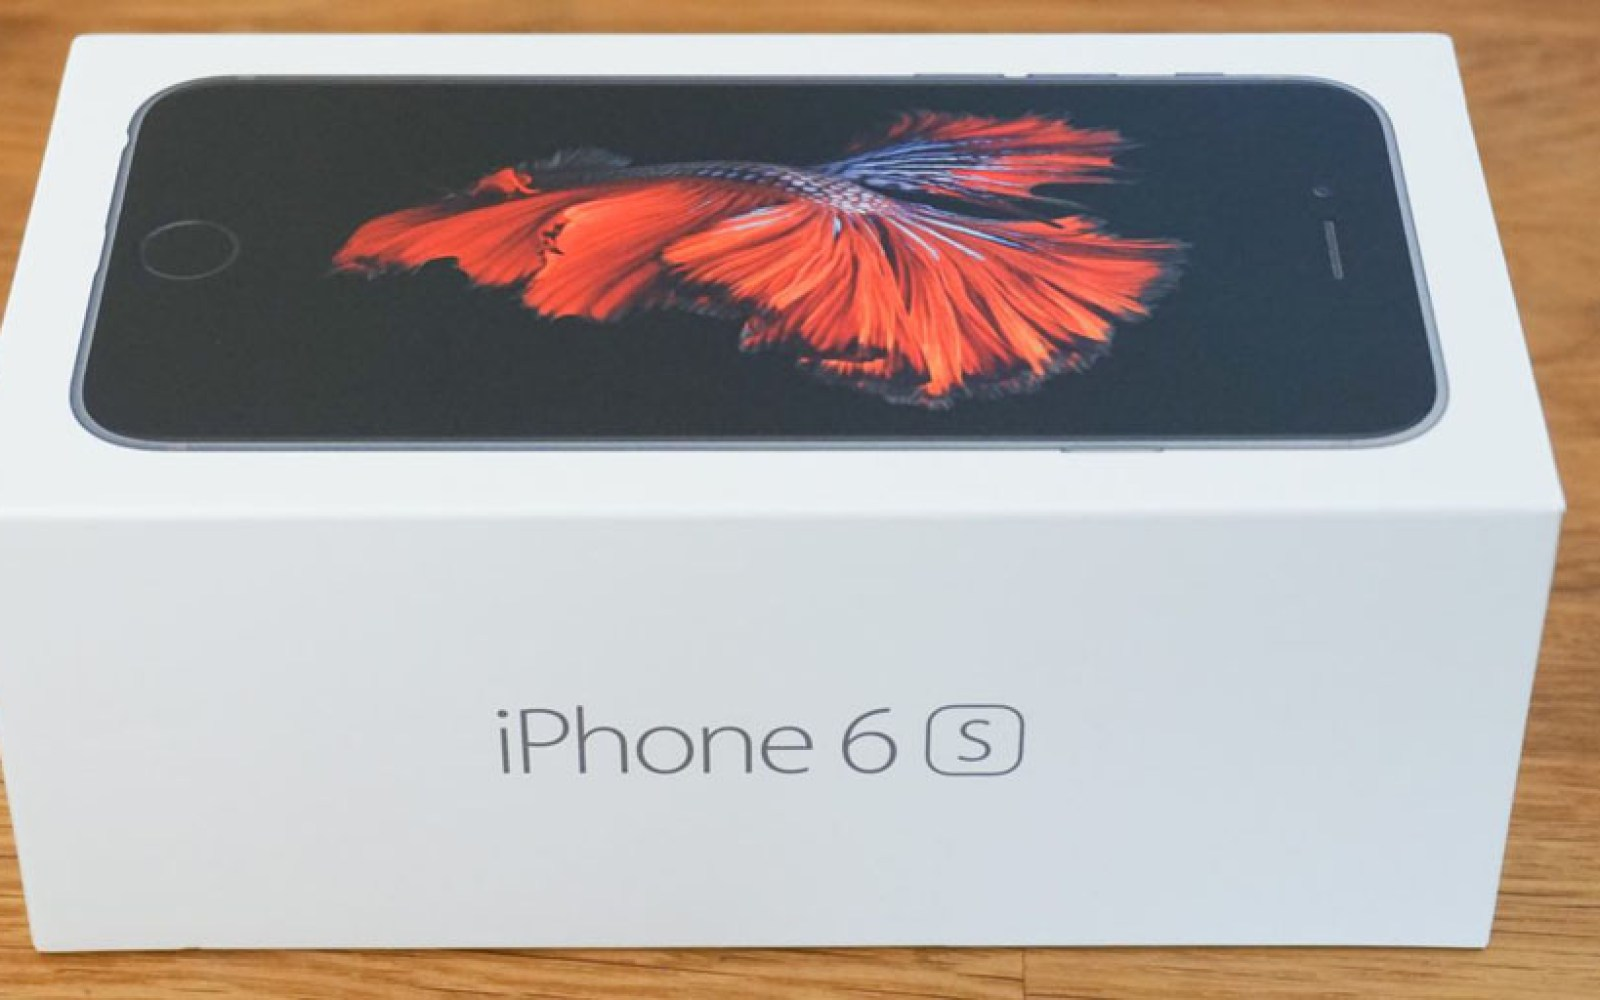 Unboxing photos of my new iPhone 6s 128GB in Space Gray